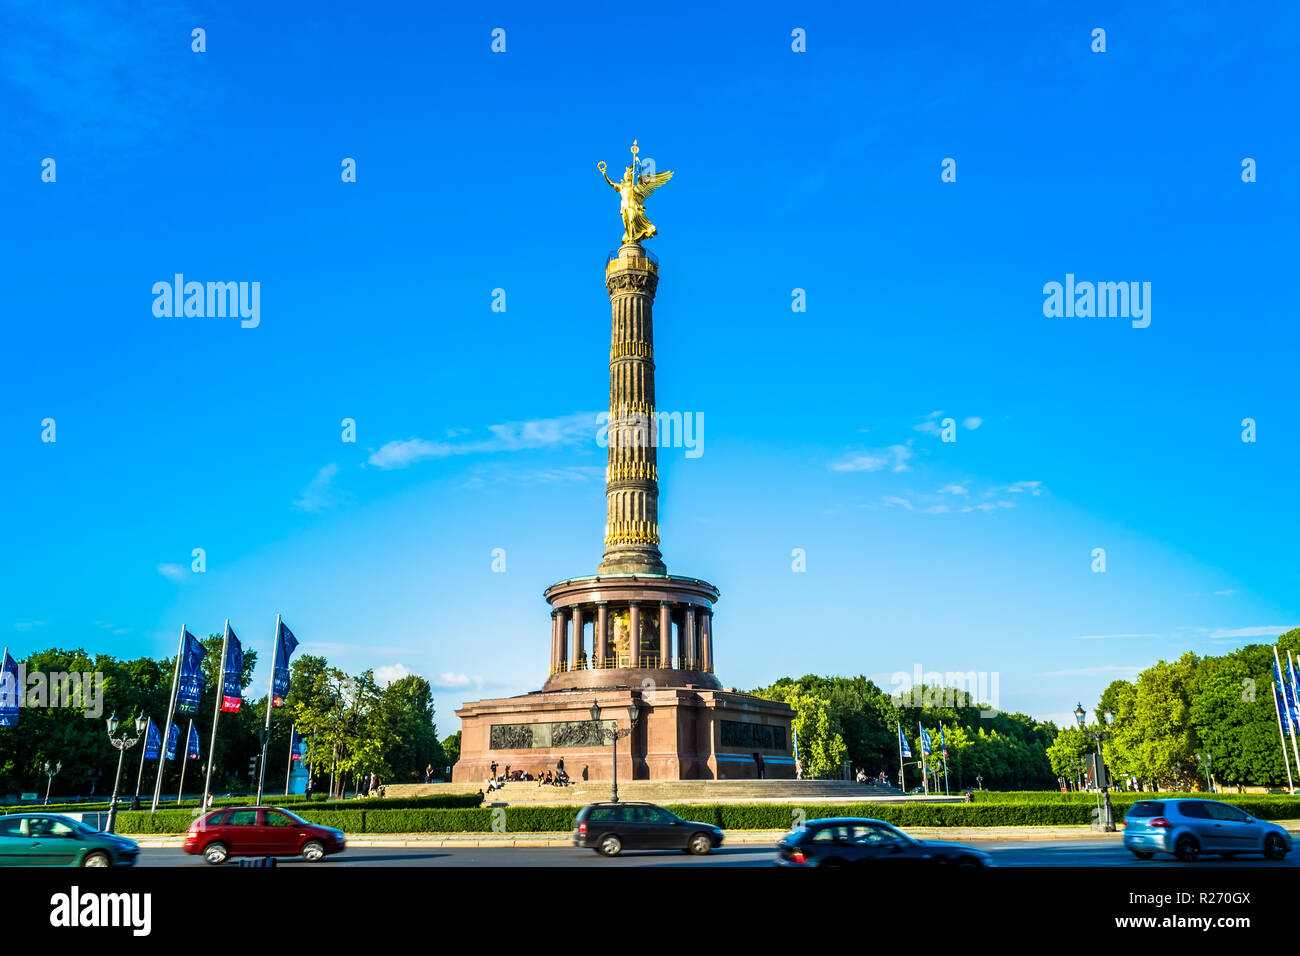 Berlin, Germany, May 25, 2015: Victory Column in Berlin. Author of the project, architect Johann Heinrich Strack. The monument is located in the cente Stock Photo